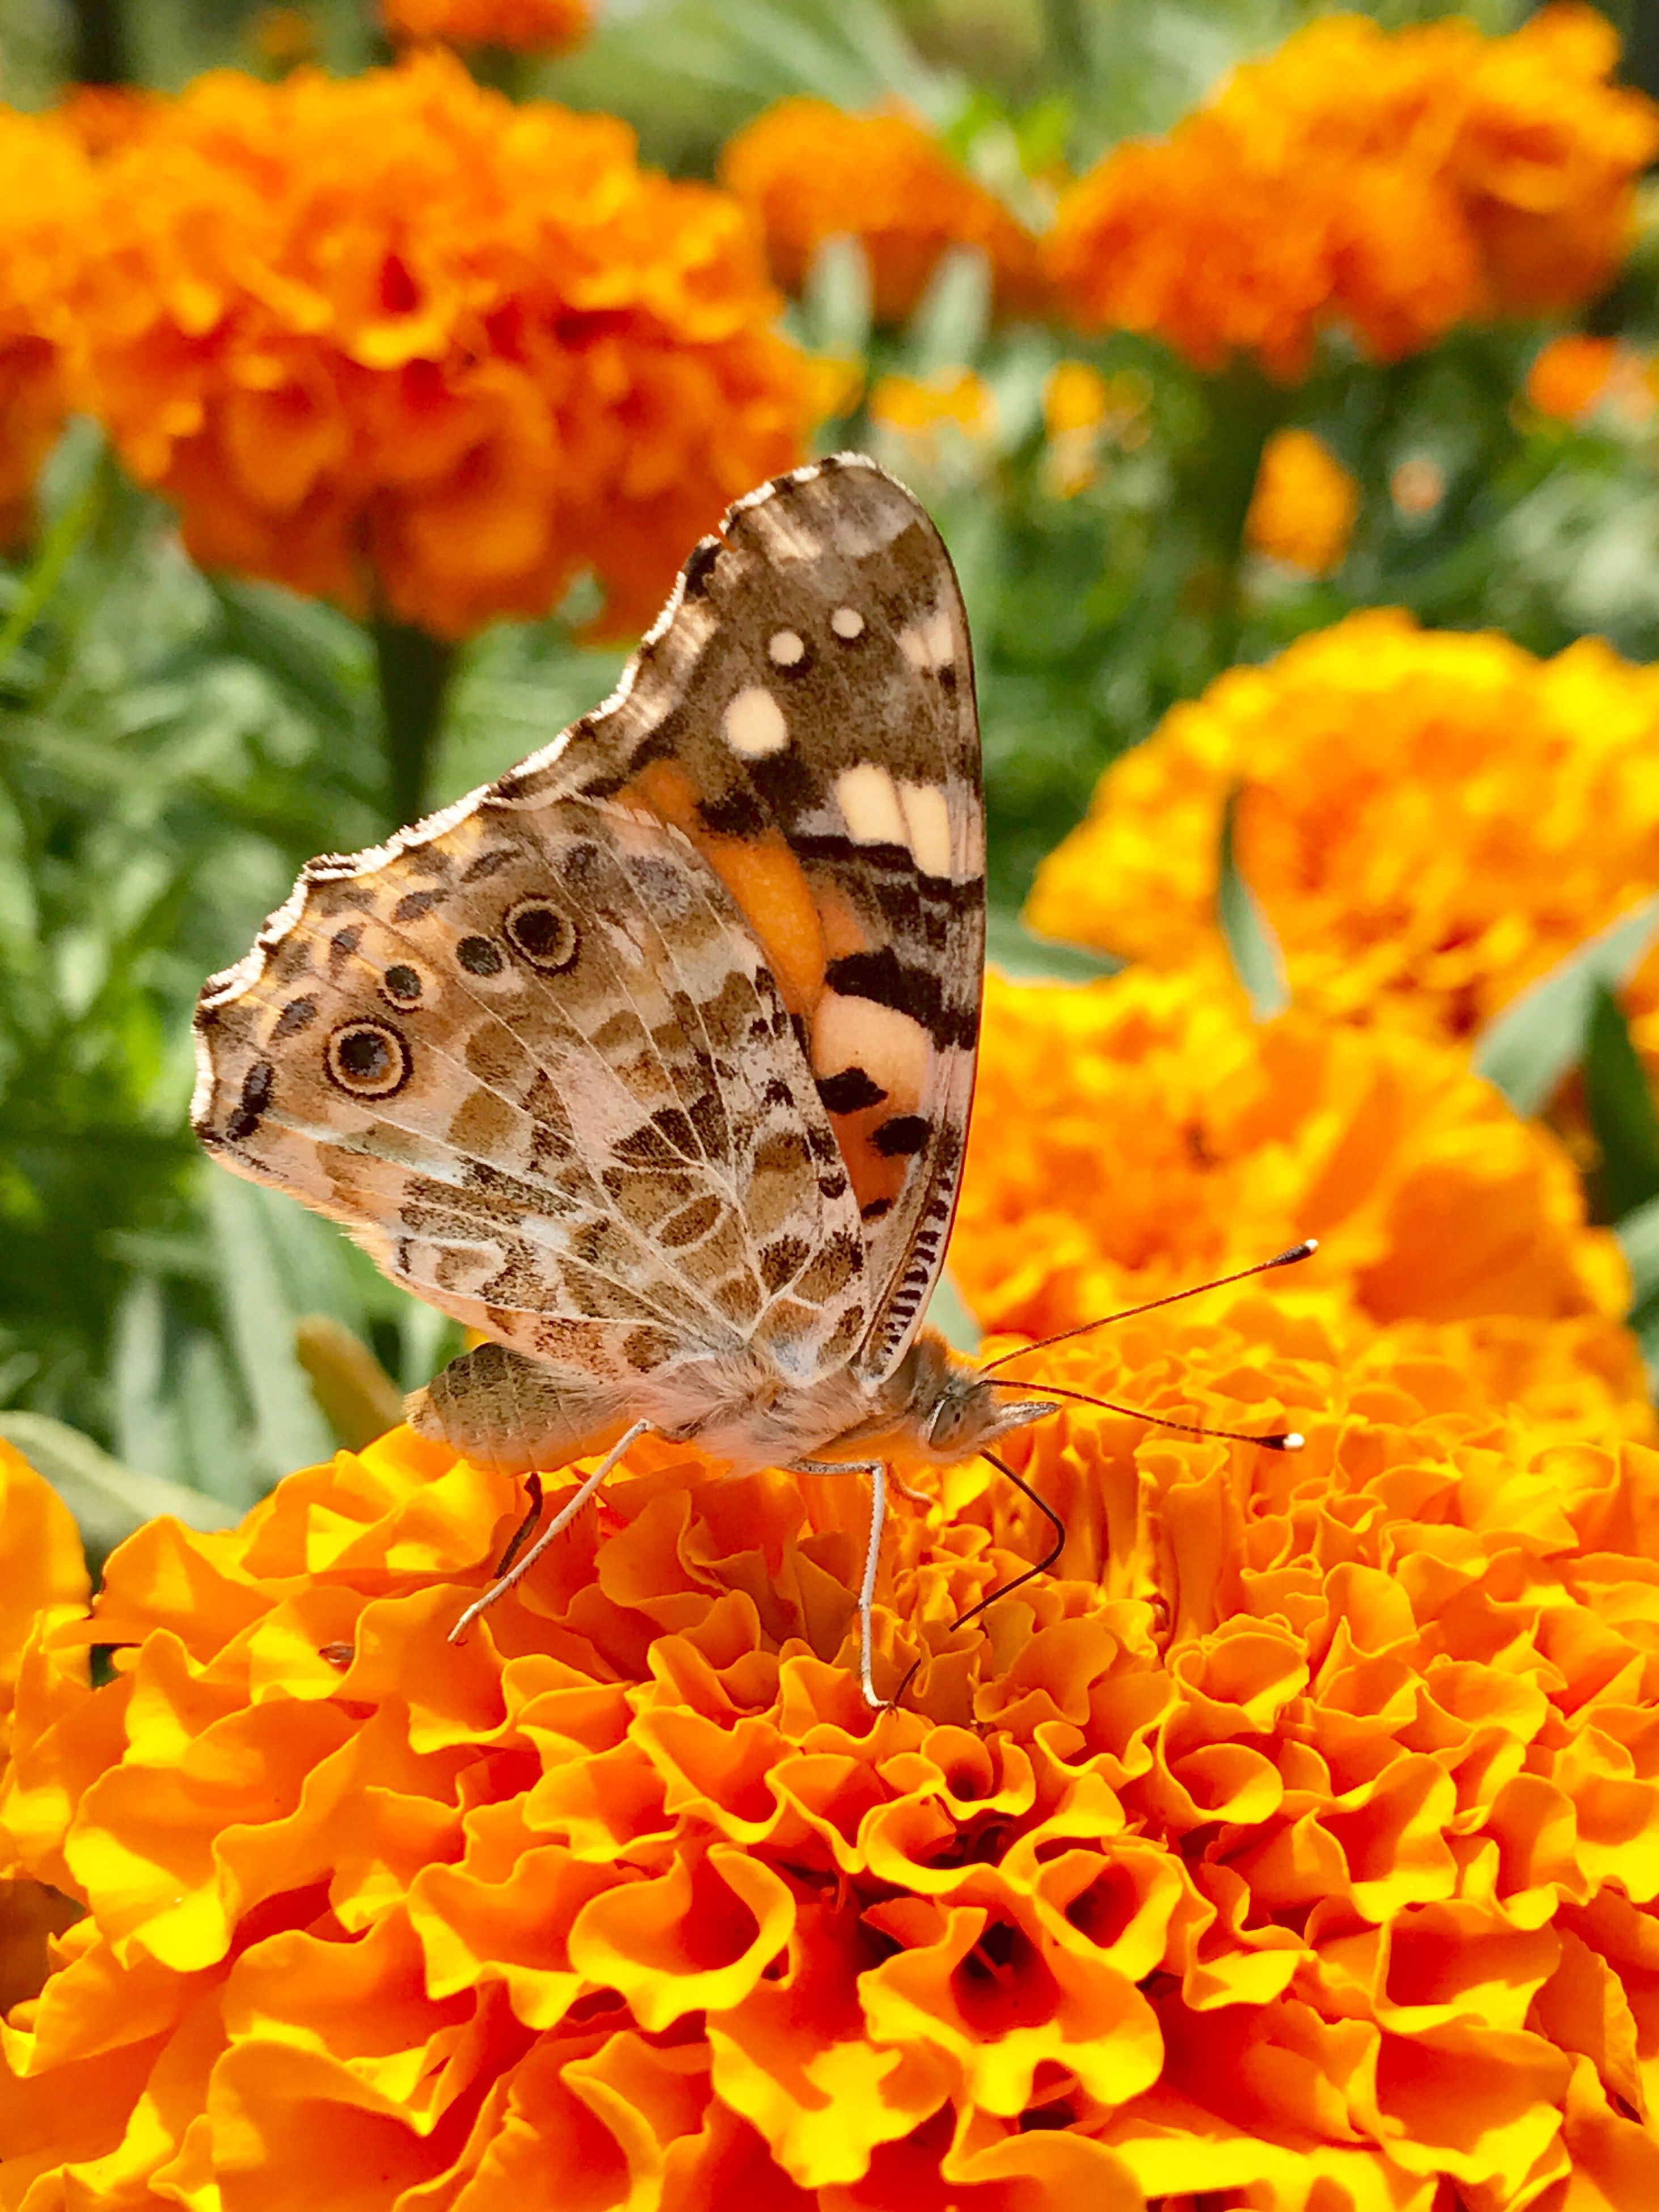 butterfly - insect, flower, one animal, animal themes, animals in the wild, beauty in nature, fragility, orange color, nature, insect, butterfly, freshness, outdoors, close-up, growth, animal markings, plant, no people, animal wildlife, petal, flower head, day, pollination, yellow, lantana camara